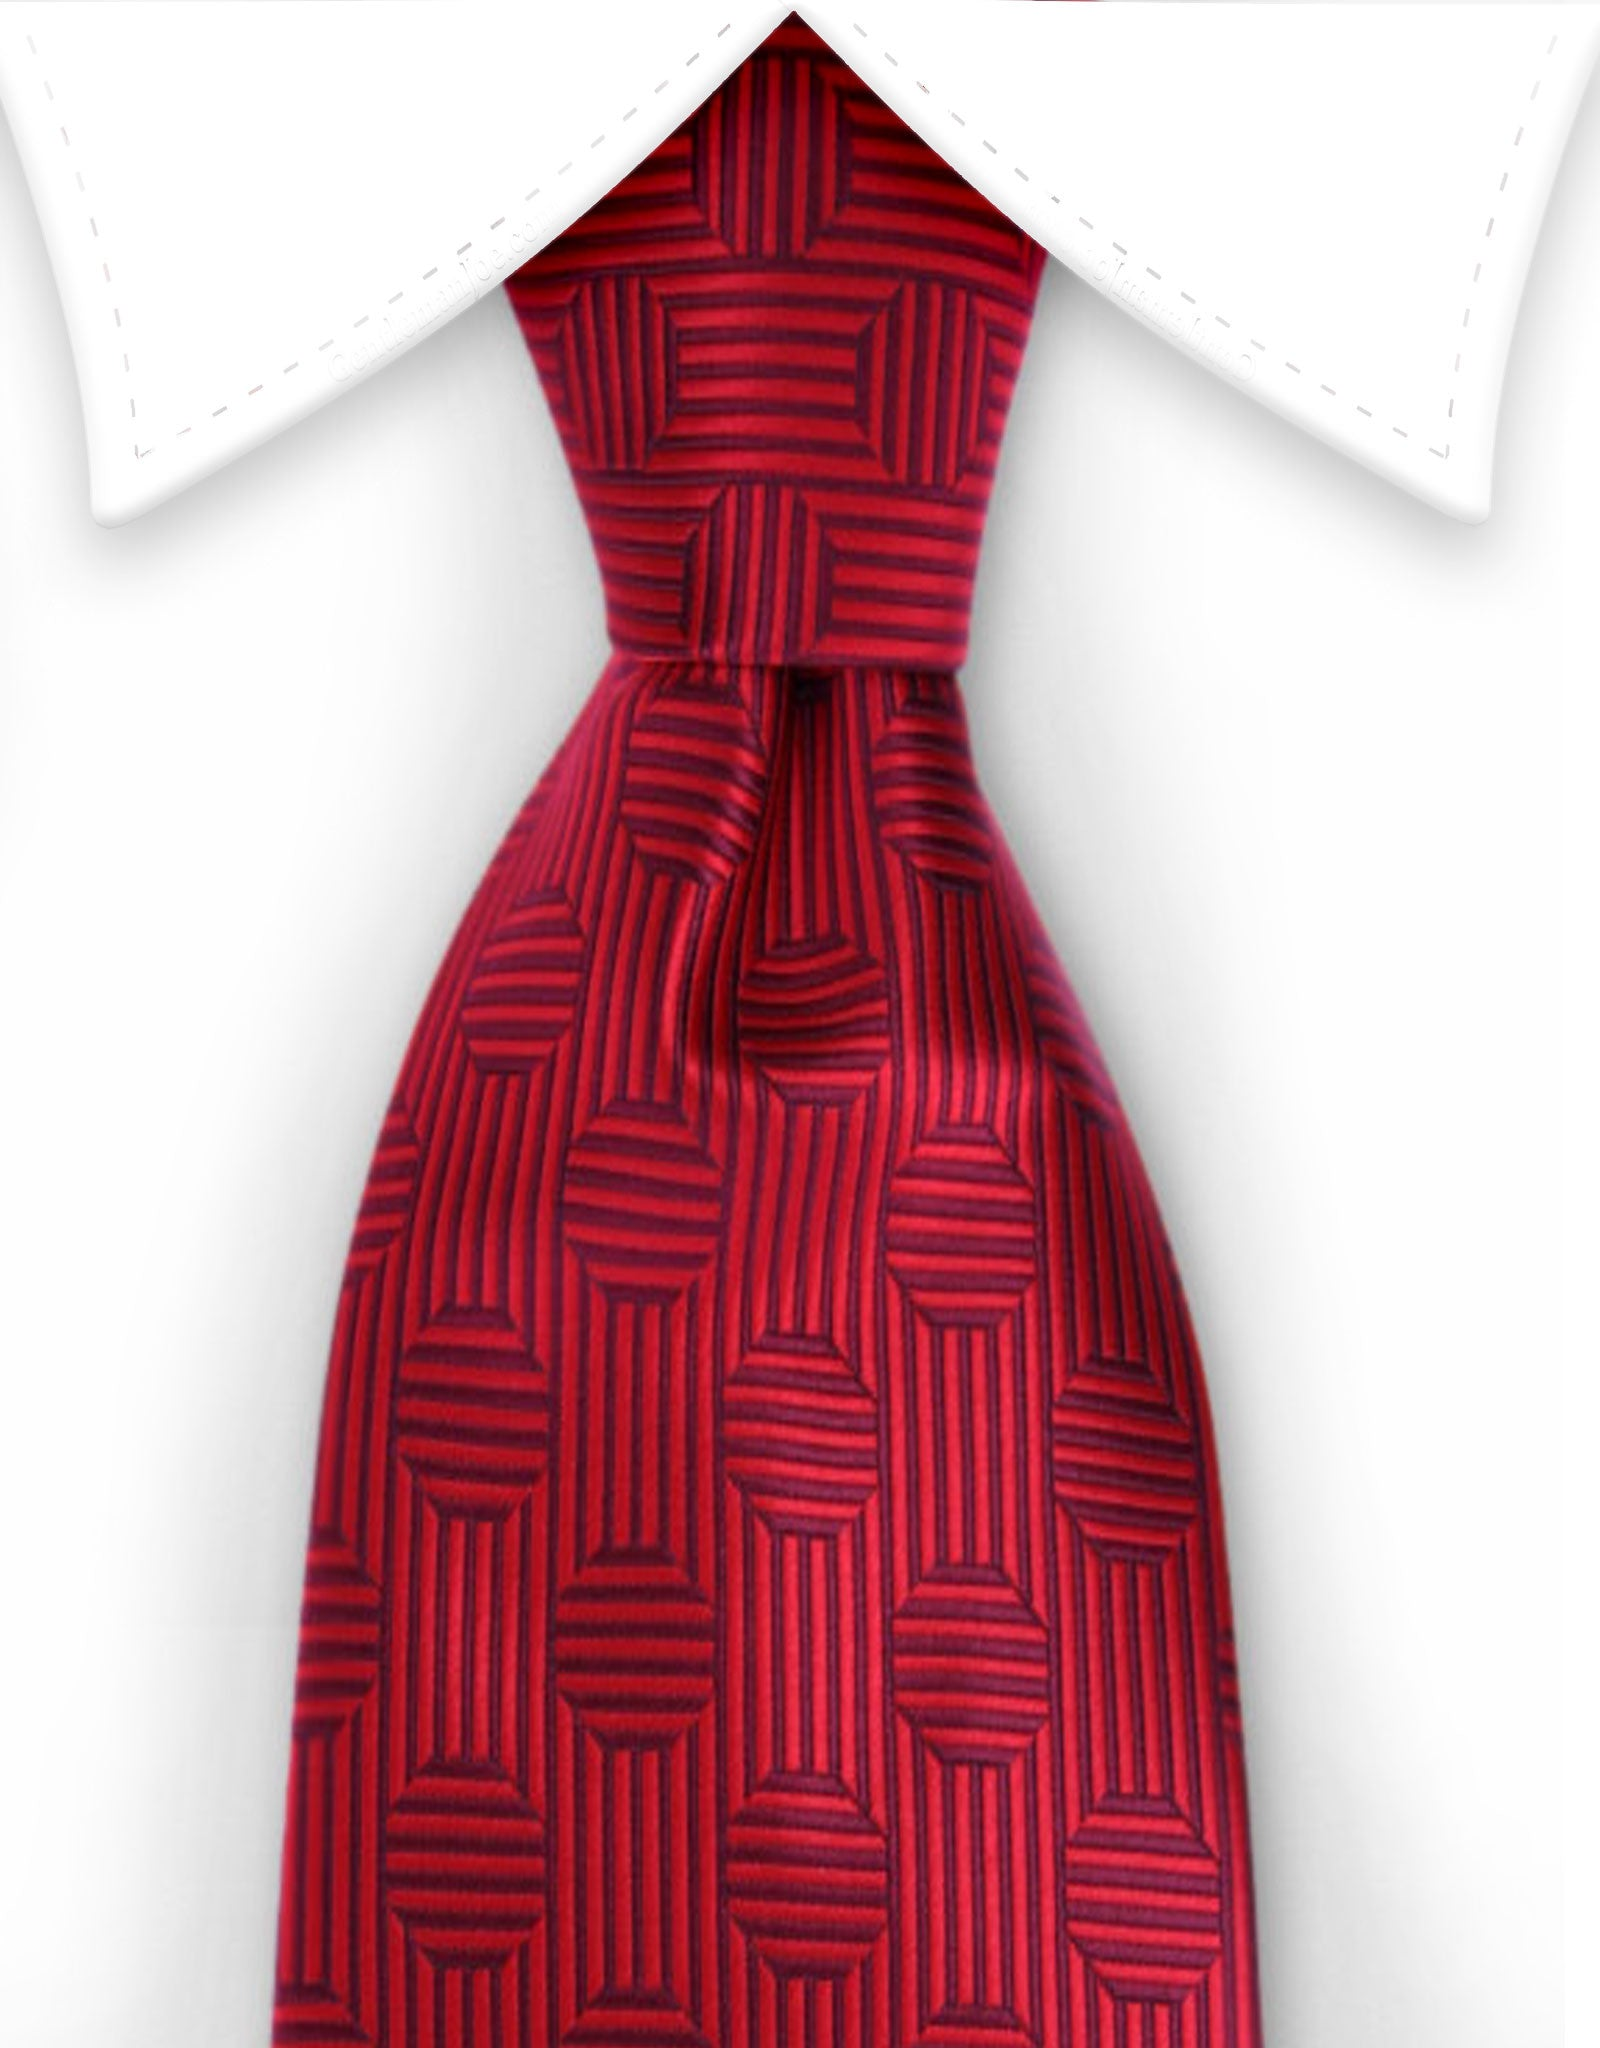 Red tie with circles